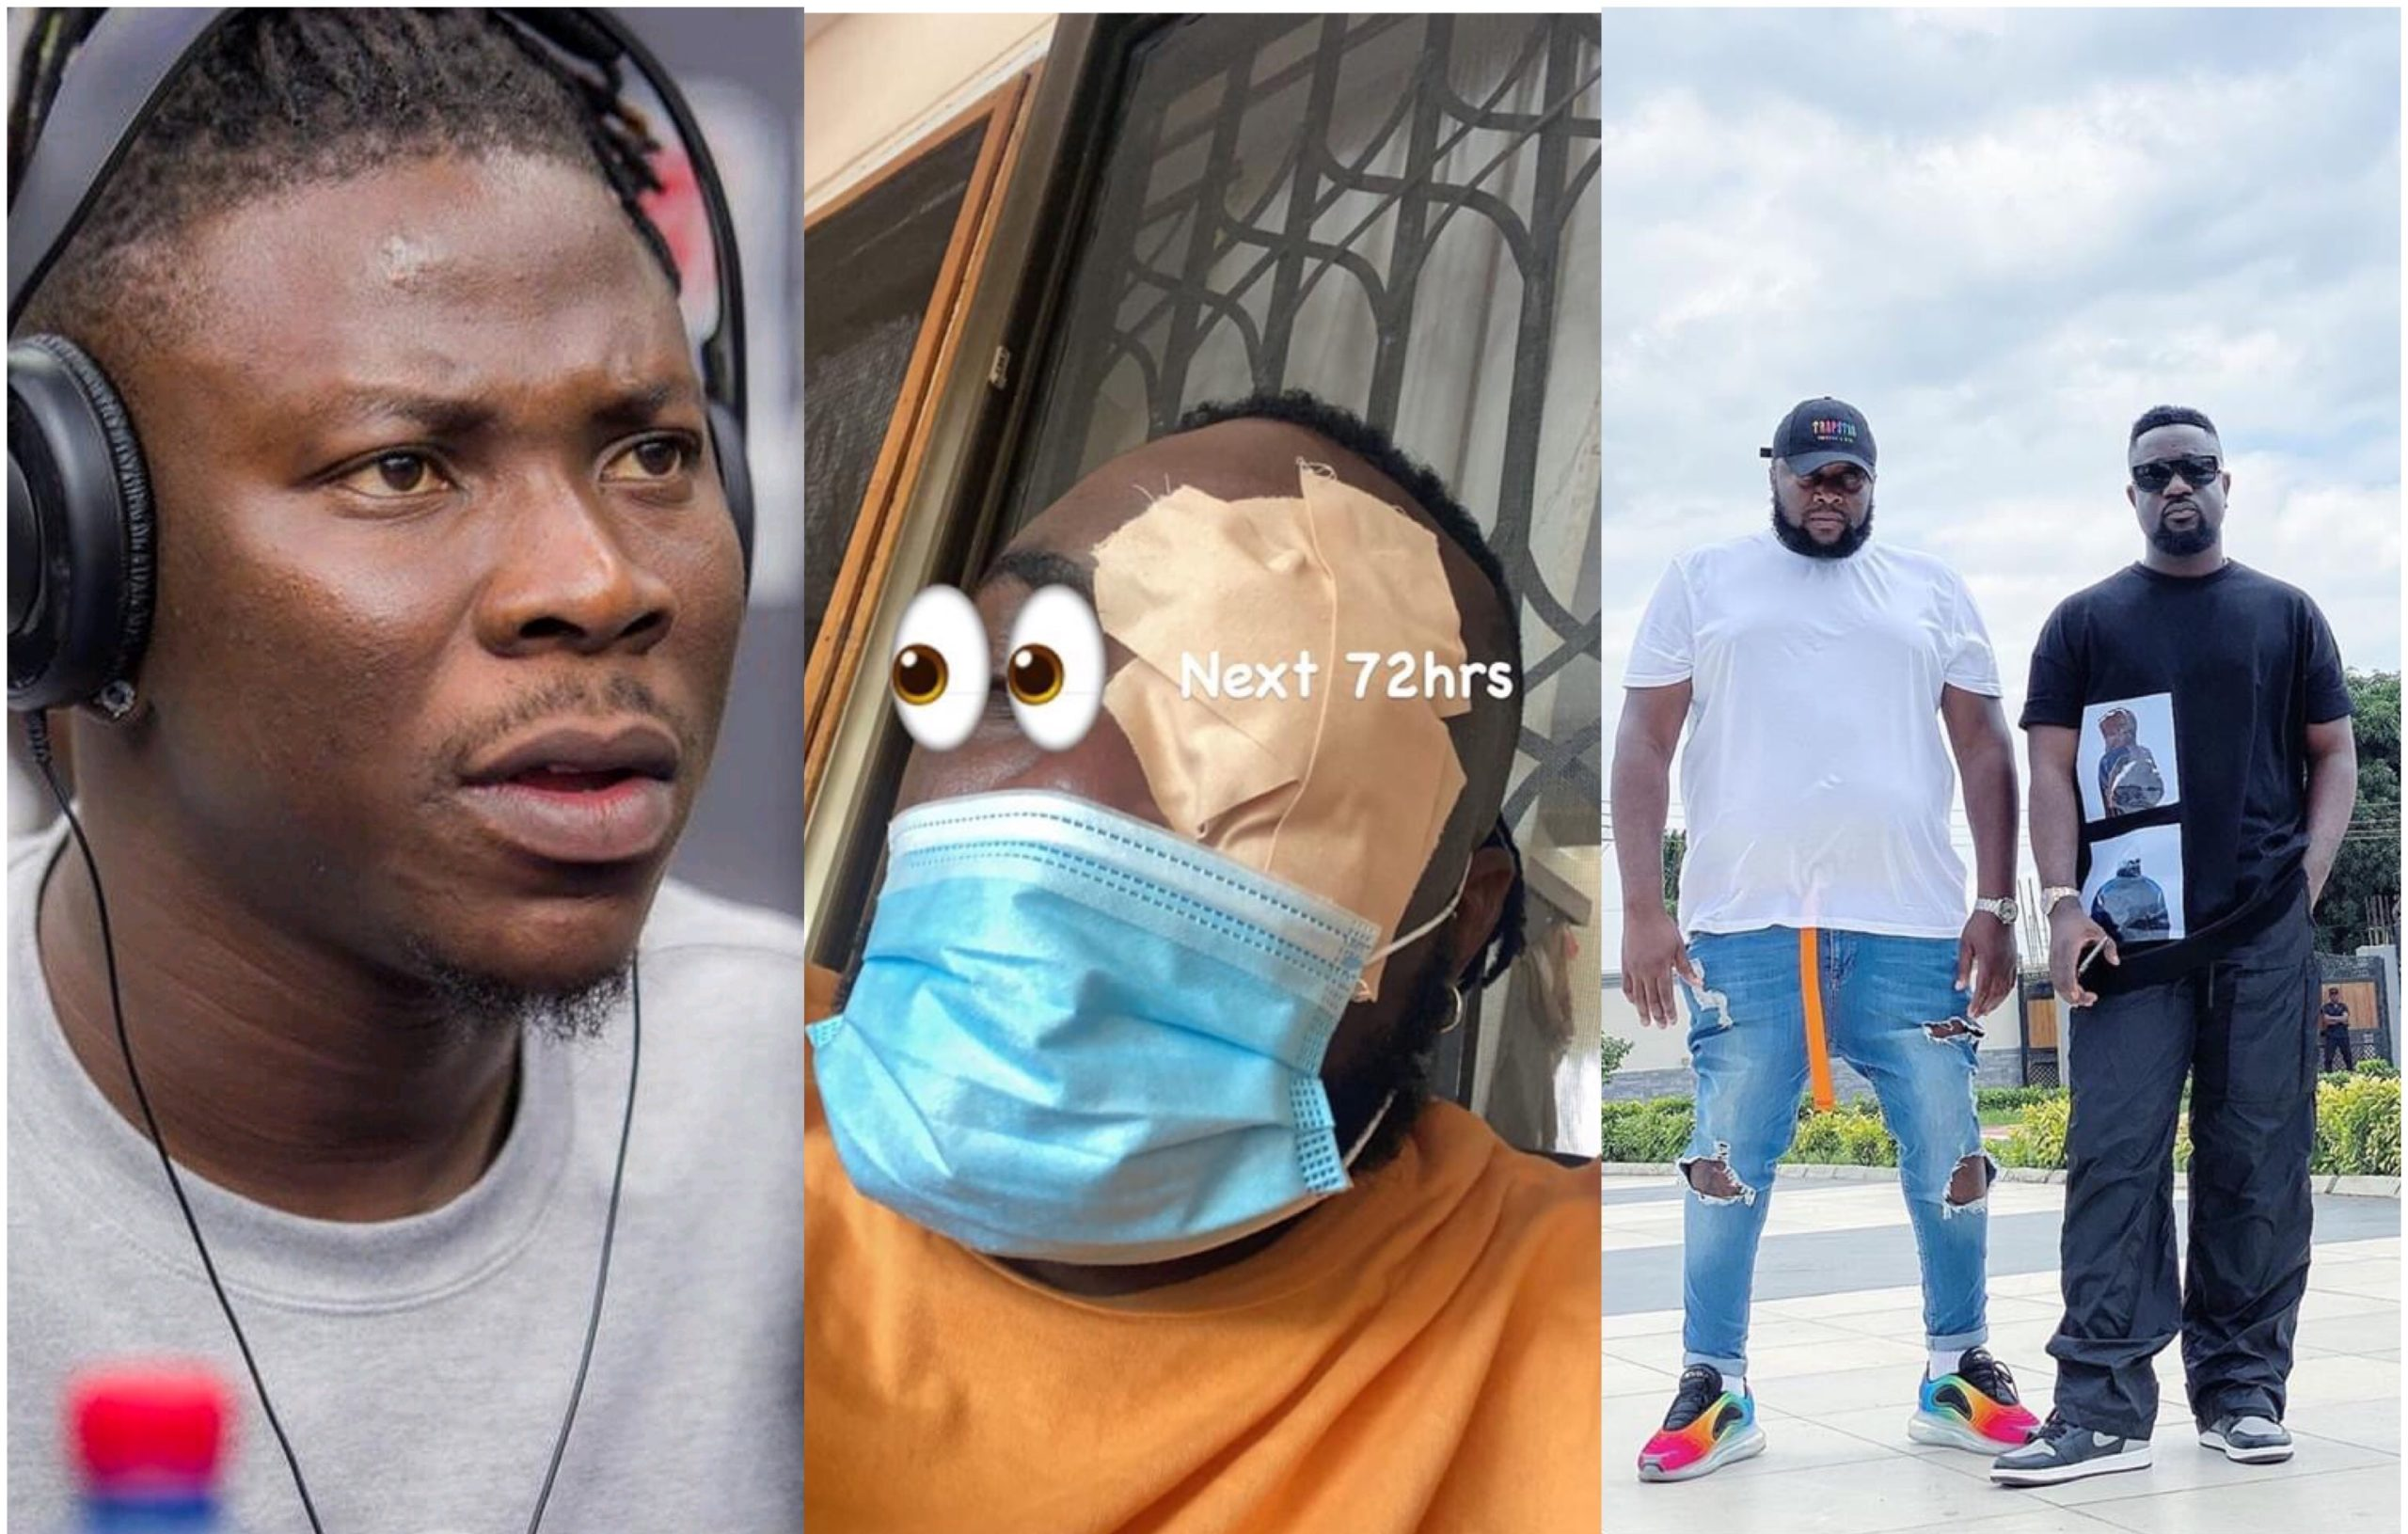 VIDEO: Stonebwoy shows deep regret; humbly apologizes to Sarkodie's manager for beating him